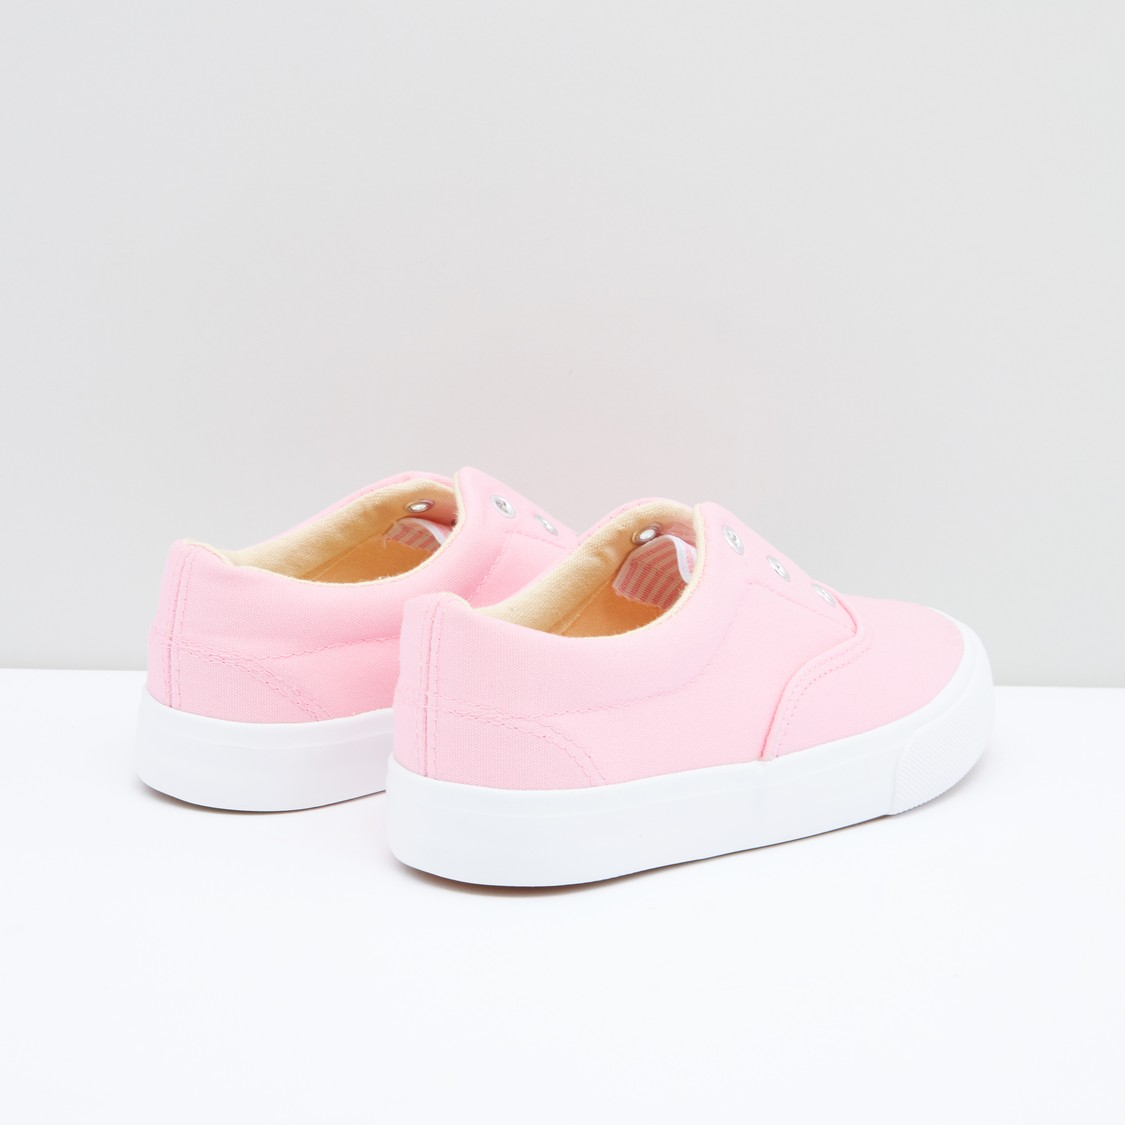 Eyelet Detail Slip-On Shoes